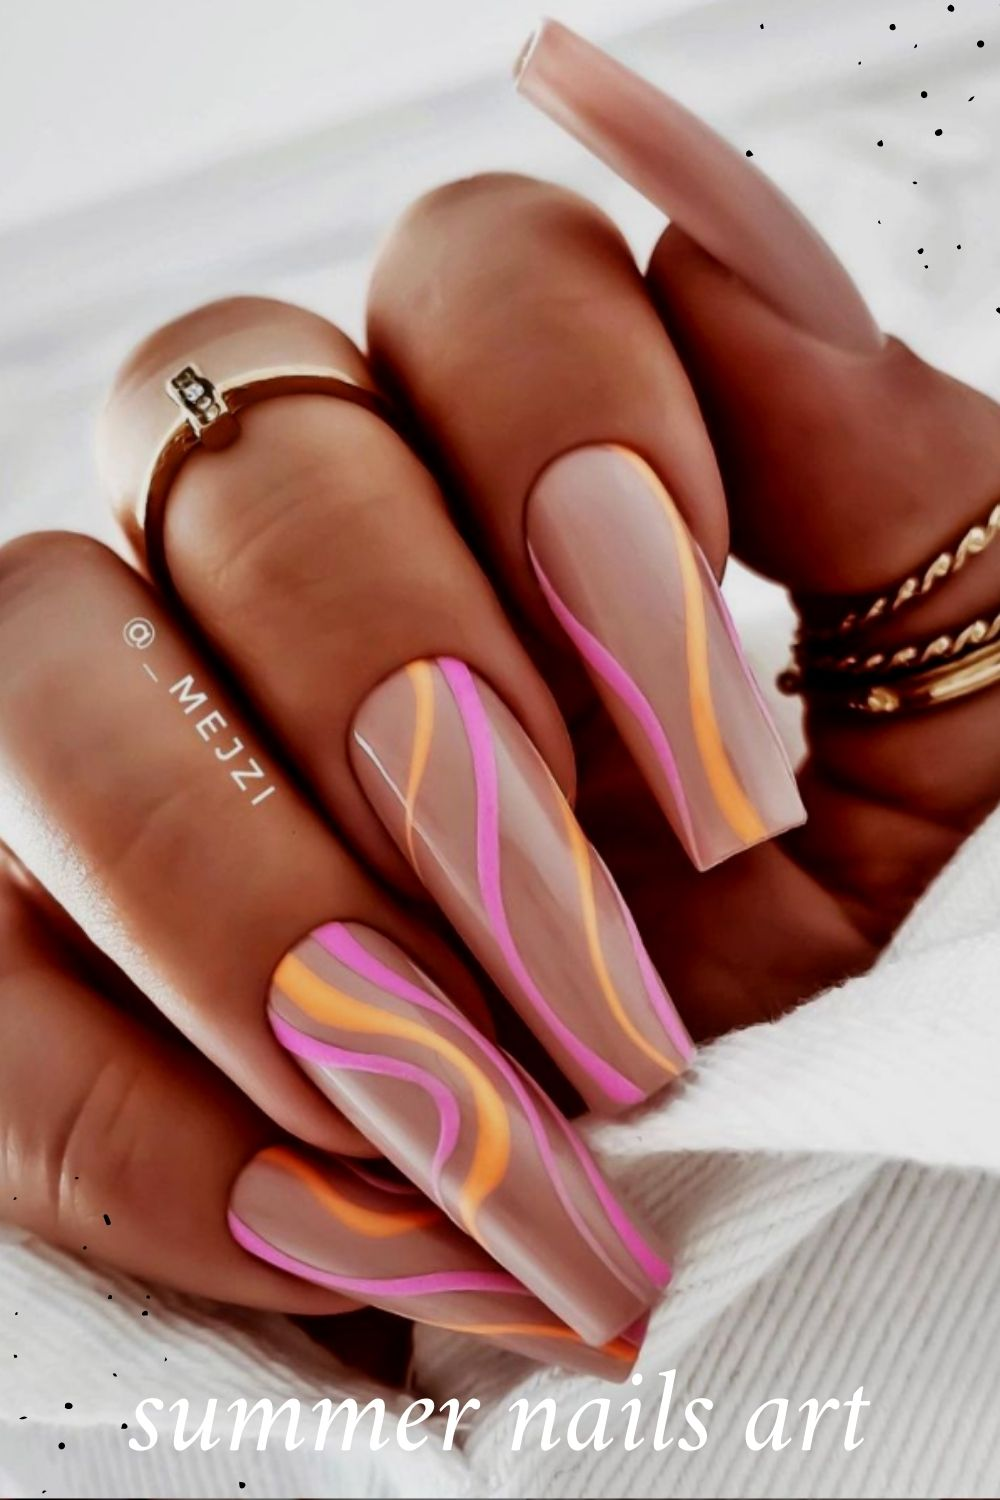 Pink coffin shaped nails for summer nails art